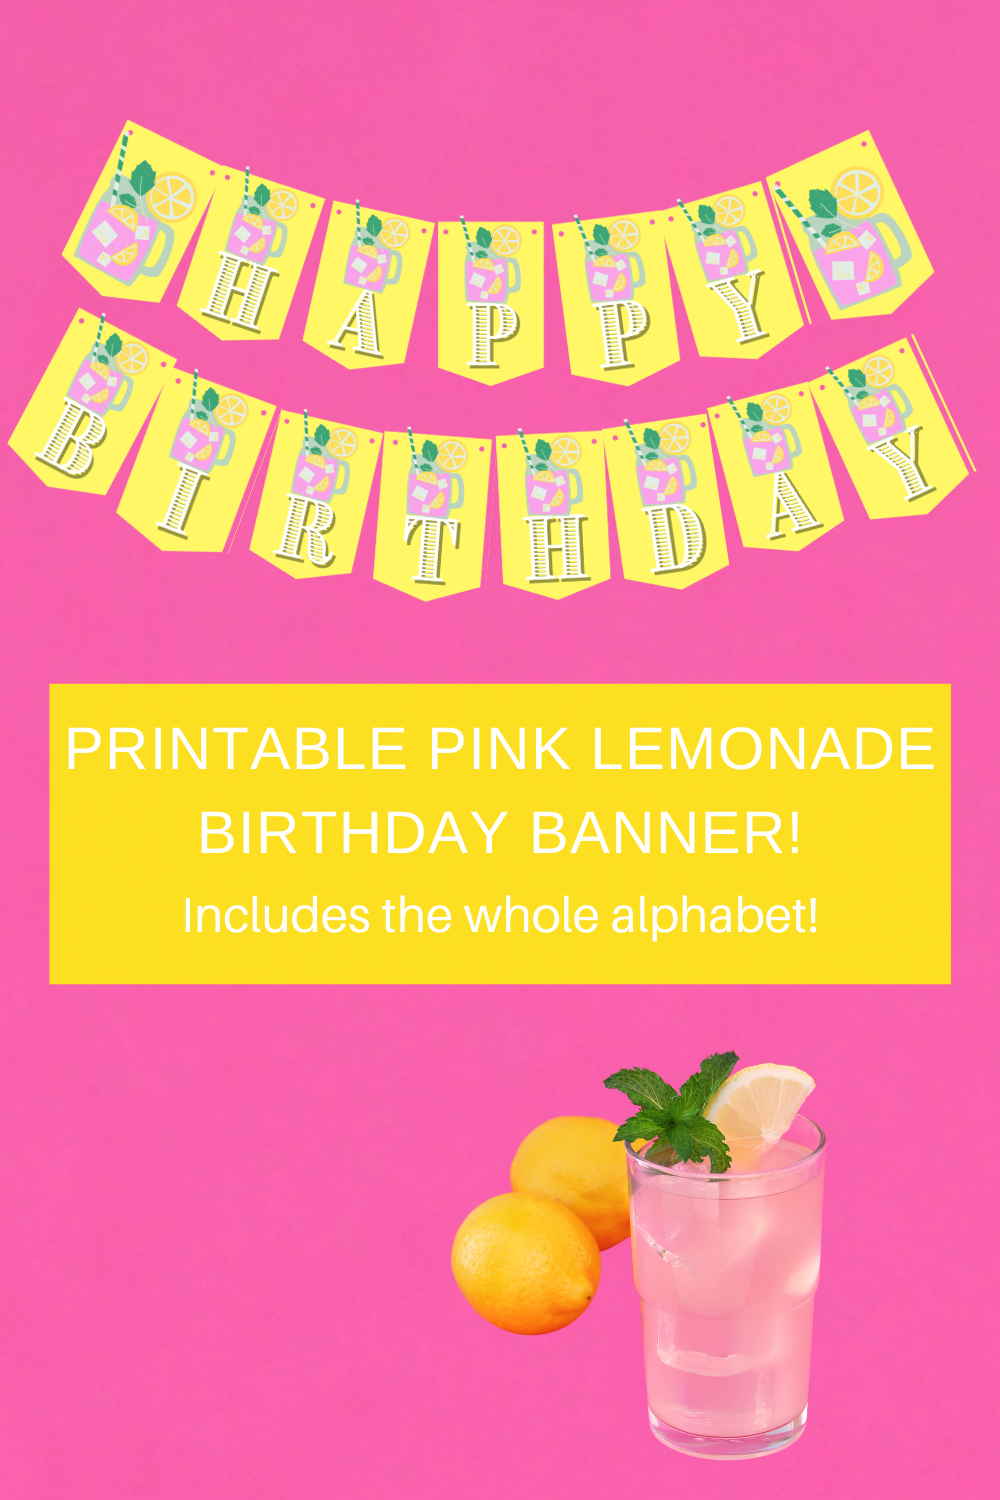 A cute yellow and pink lemonade birthday banner